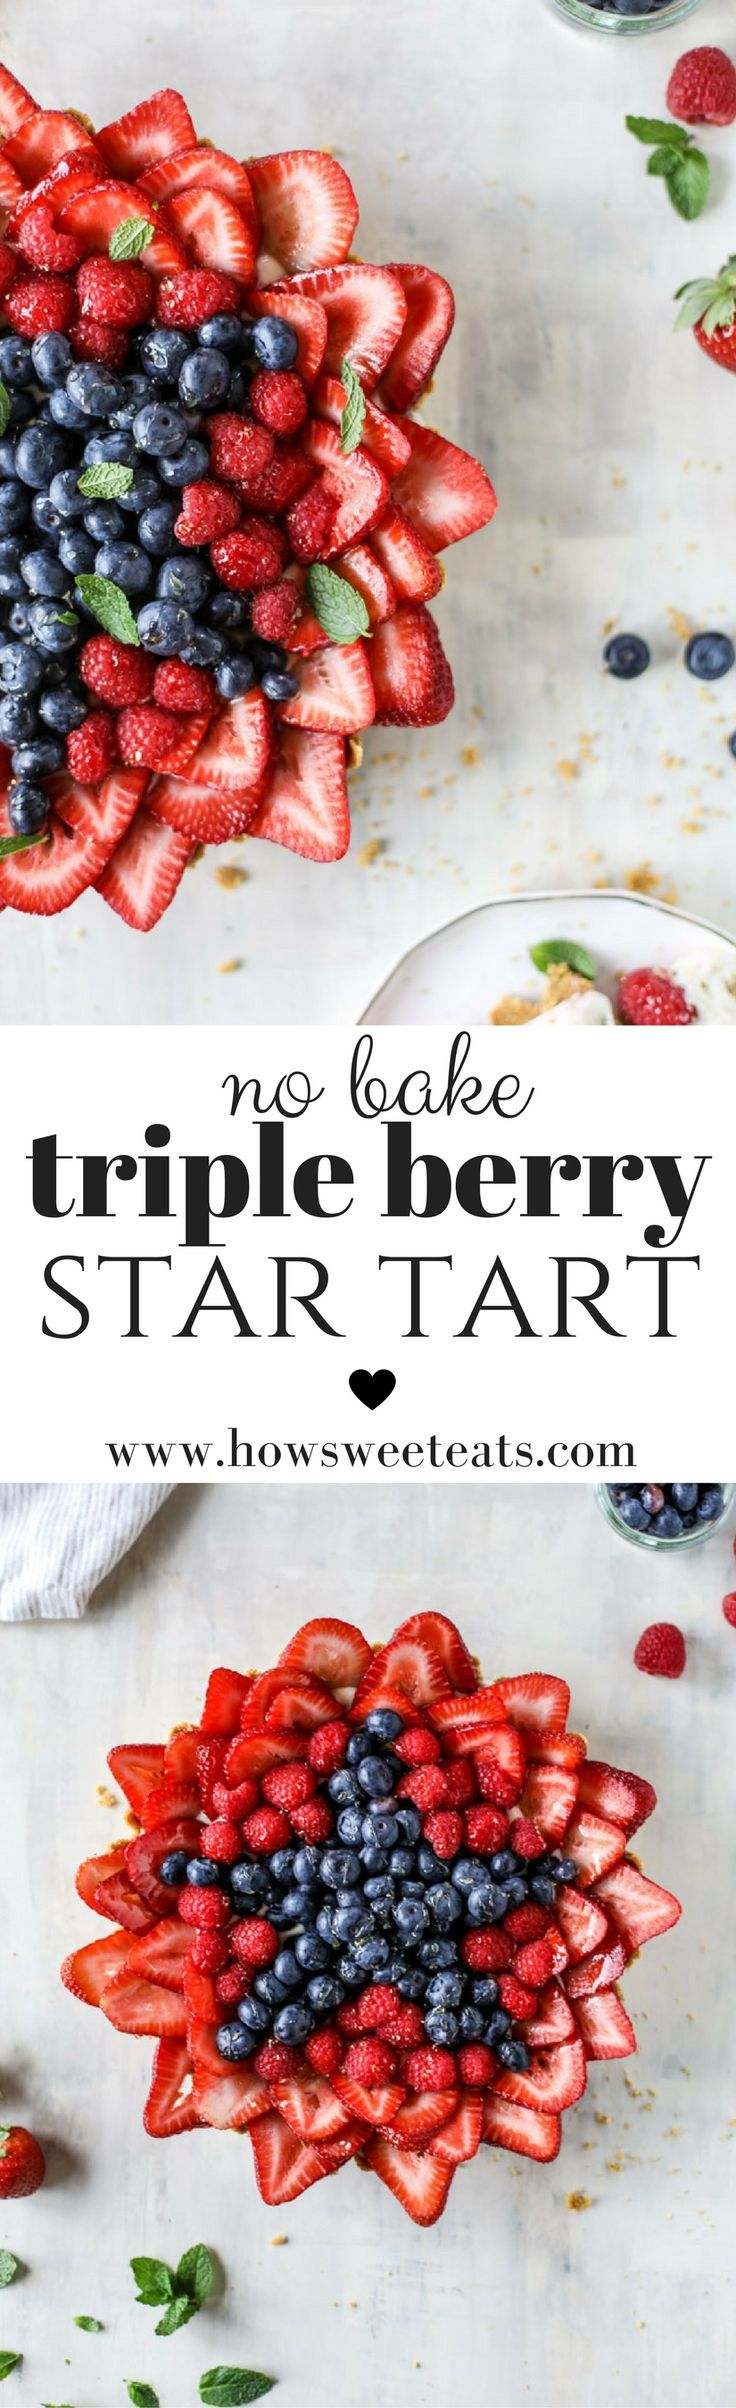 VIDEO! This NO BAKE Cheesecake Triple Berry Star Tart is perfect for the 4th of July! I howsweeteats.com